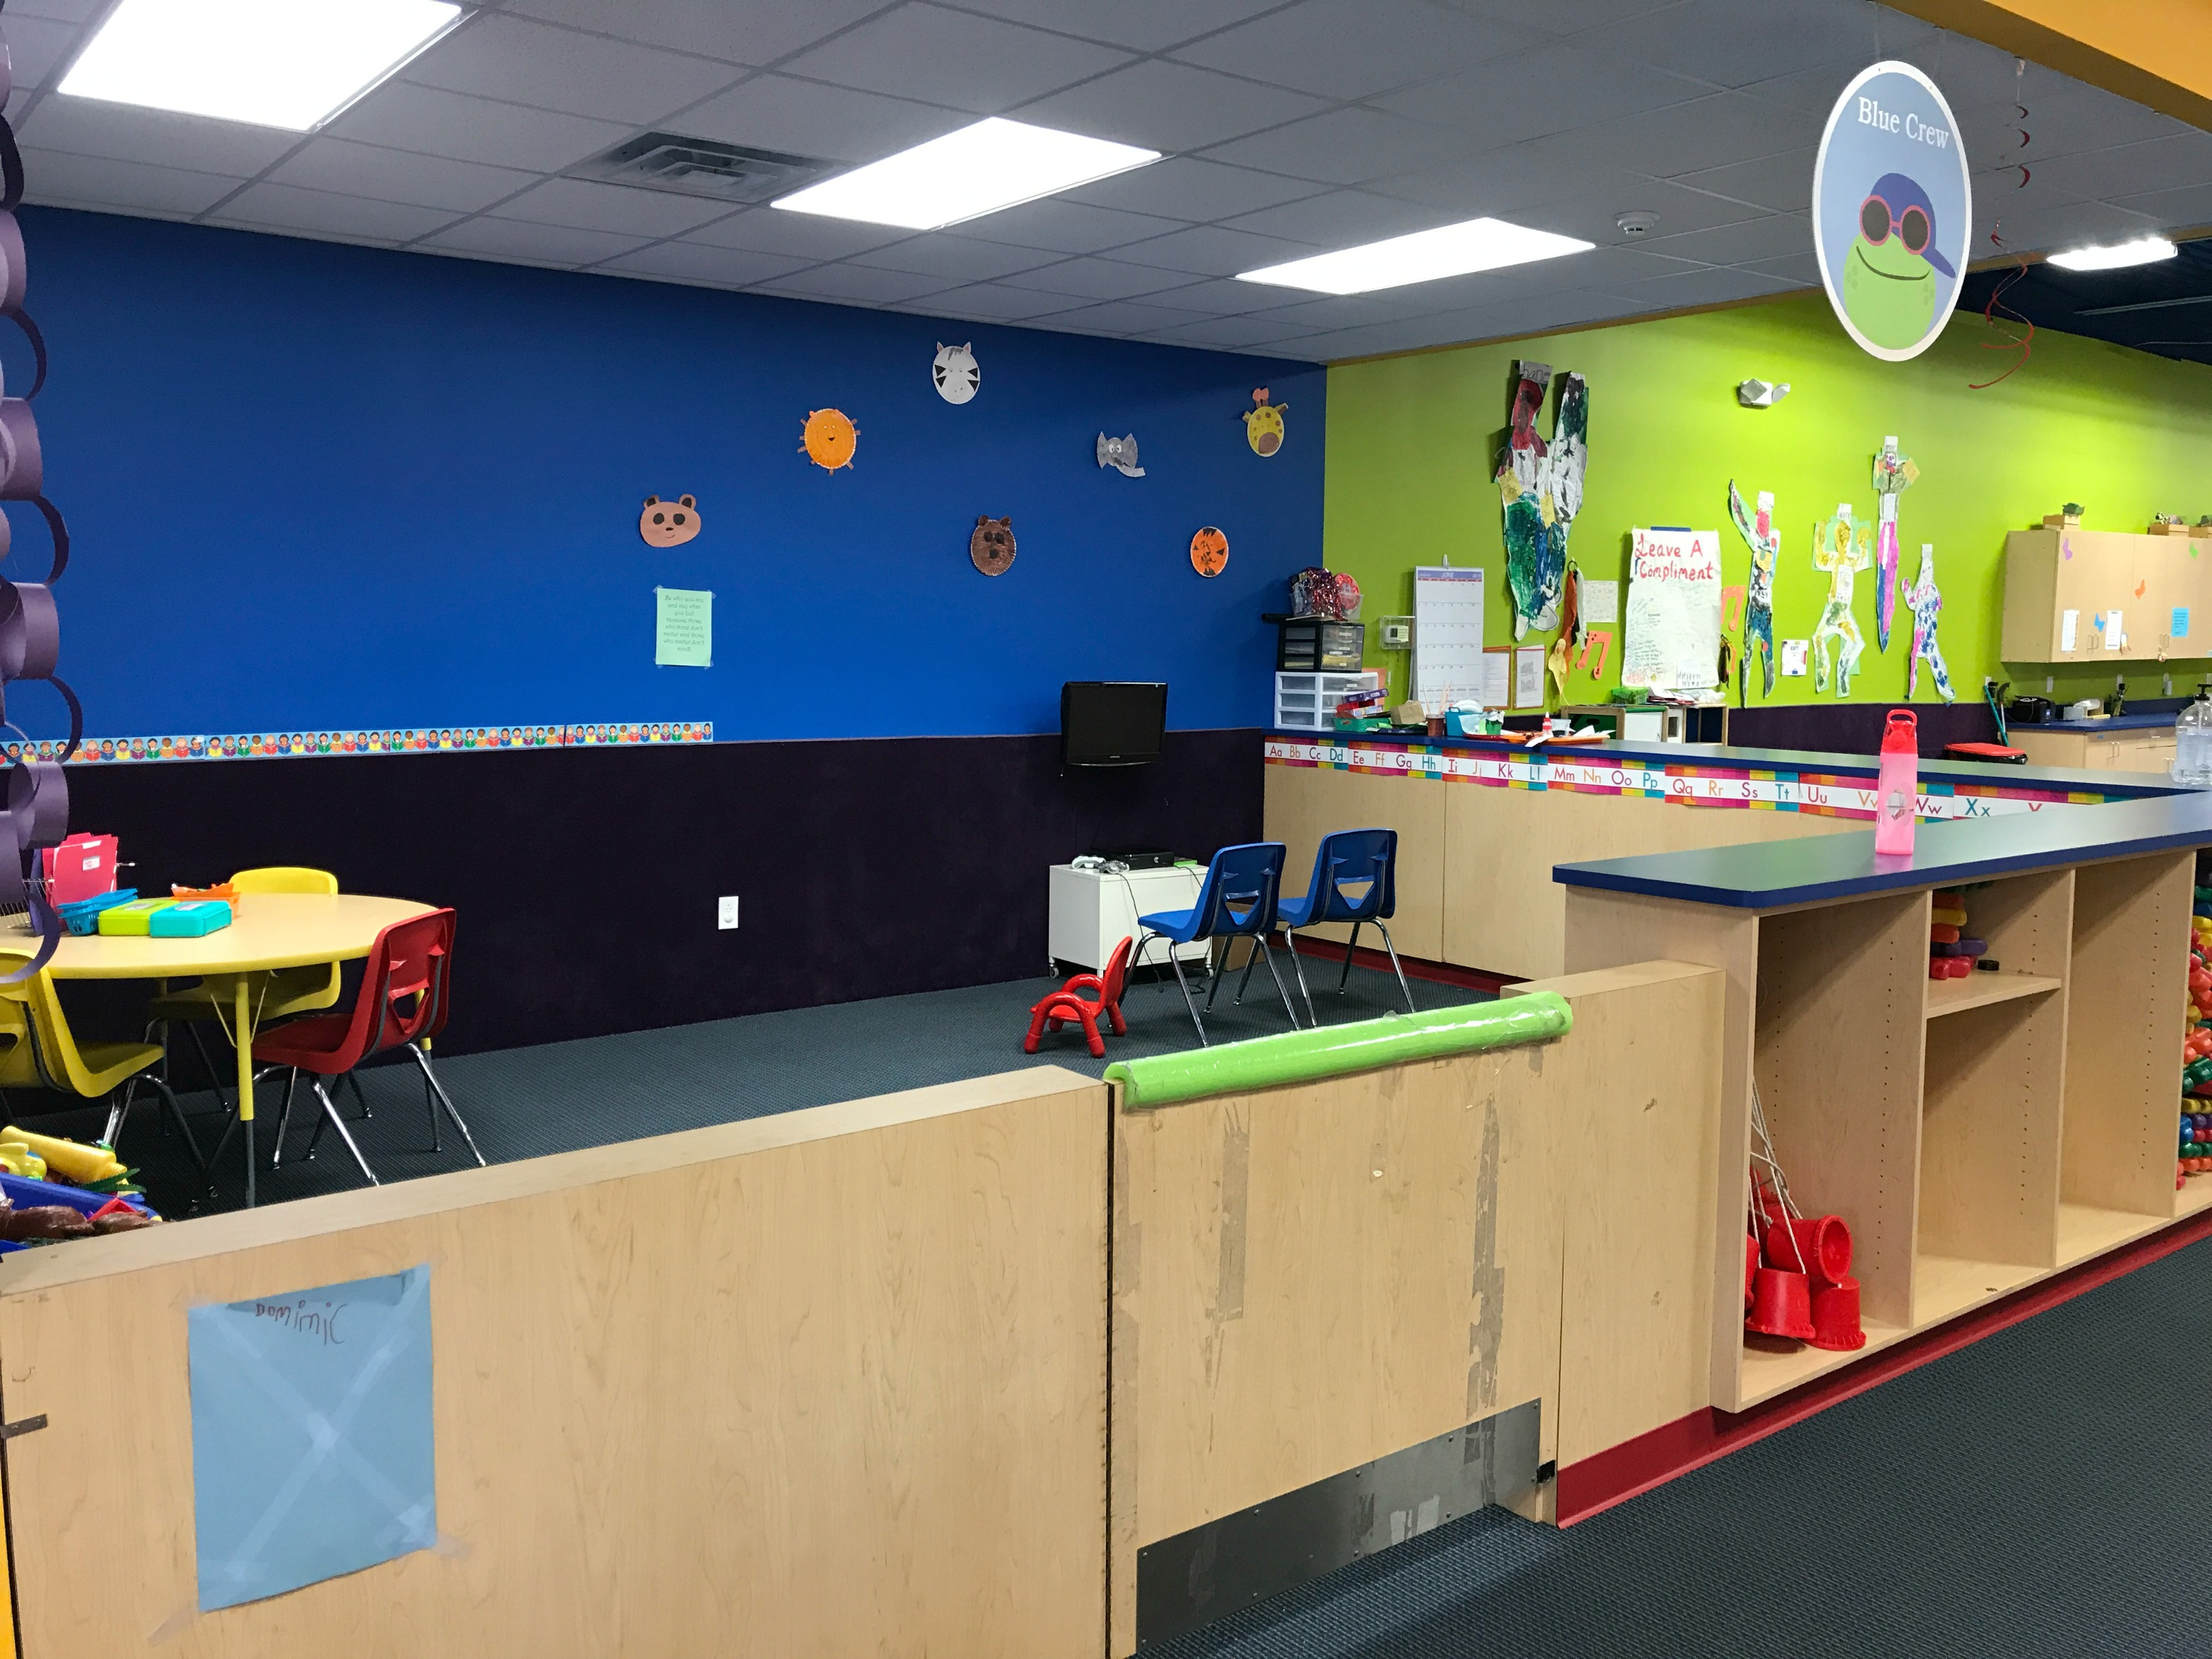 KidsPark Offers Childcare Options for Busy Families